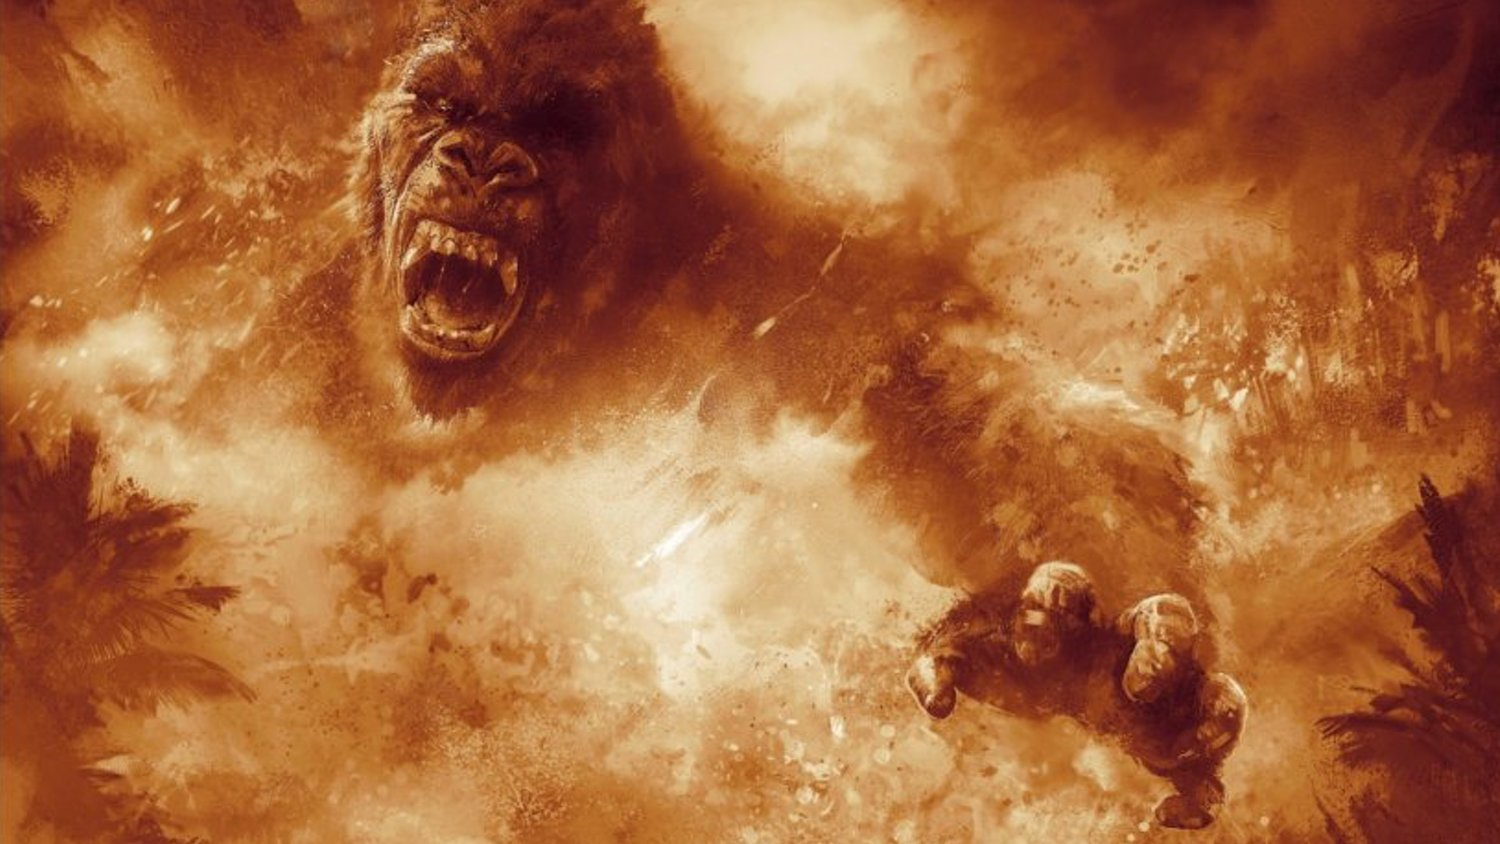 KONG: SKULL ISLAND Gets One Awesome Final Trailer and Some Beautiful Poster Art